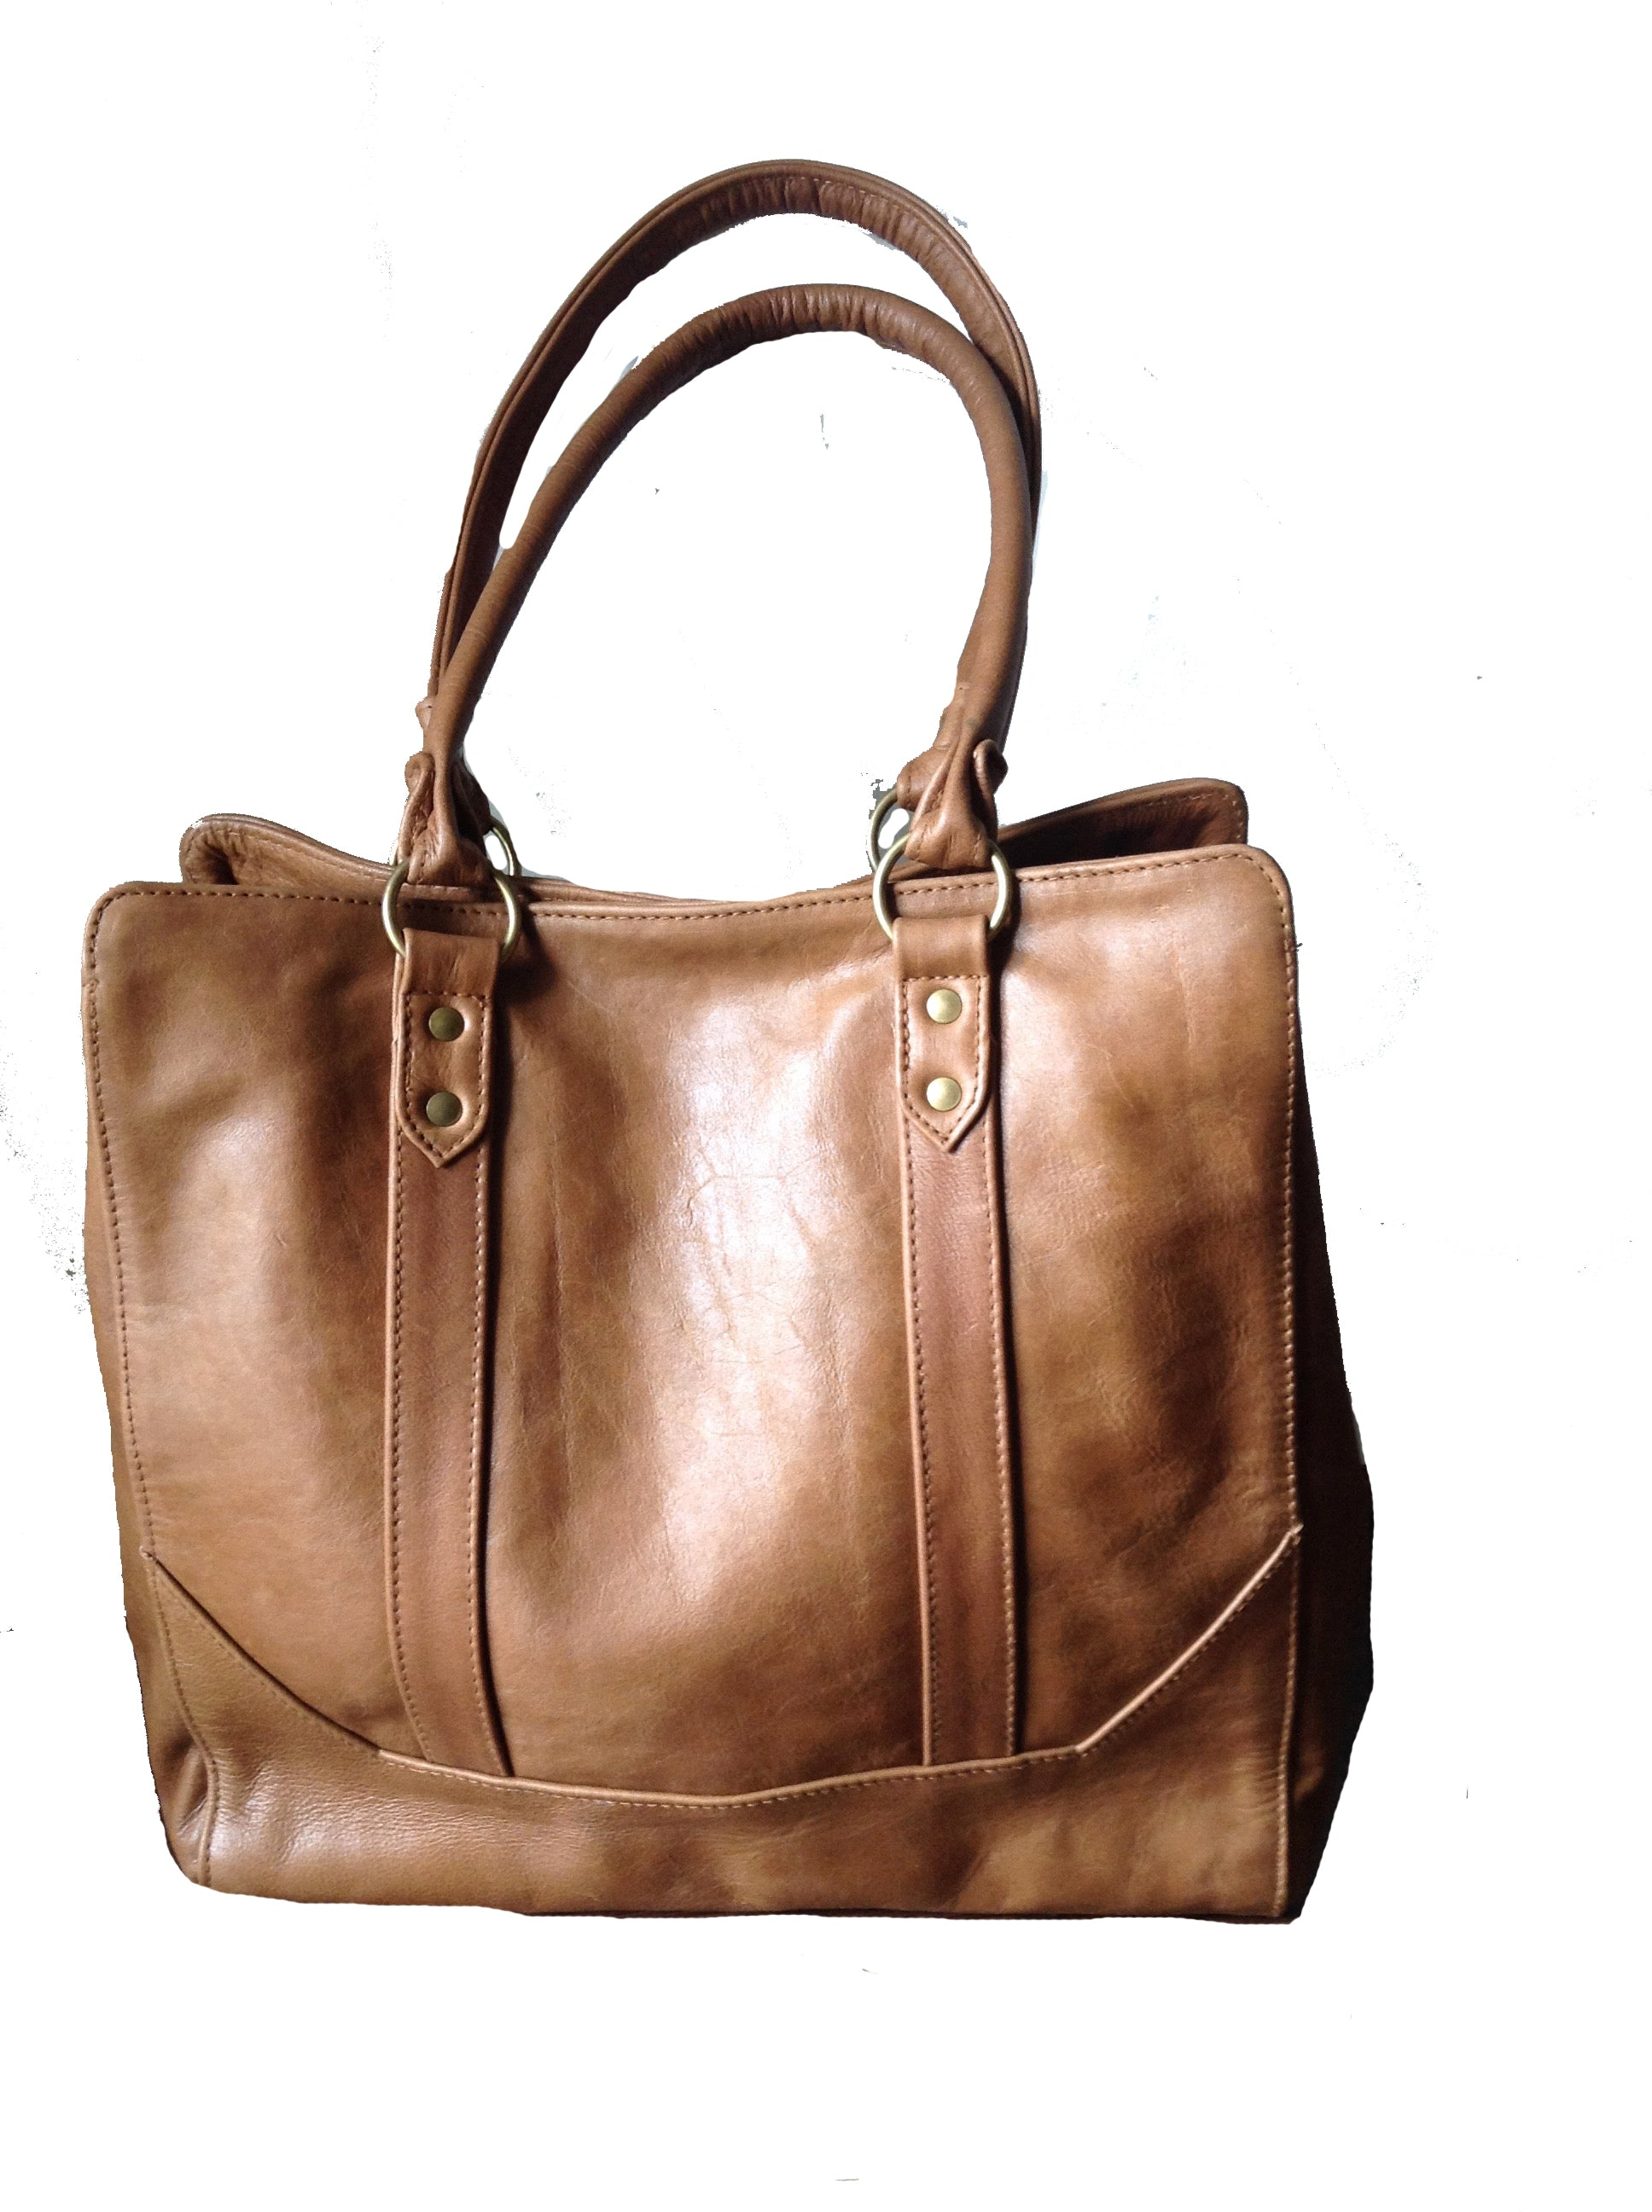 The Attache Tote - Timeless handmade classic,traditional shoulder Tote Bag.